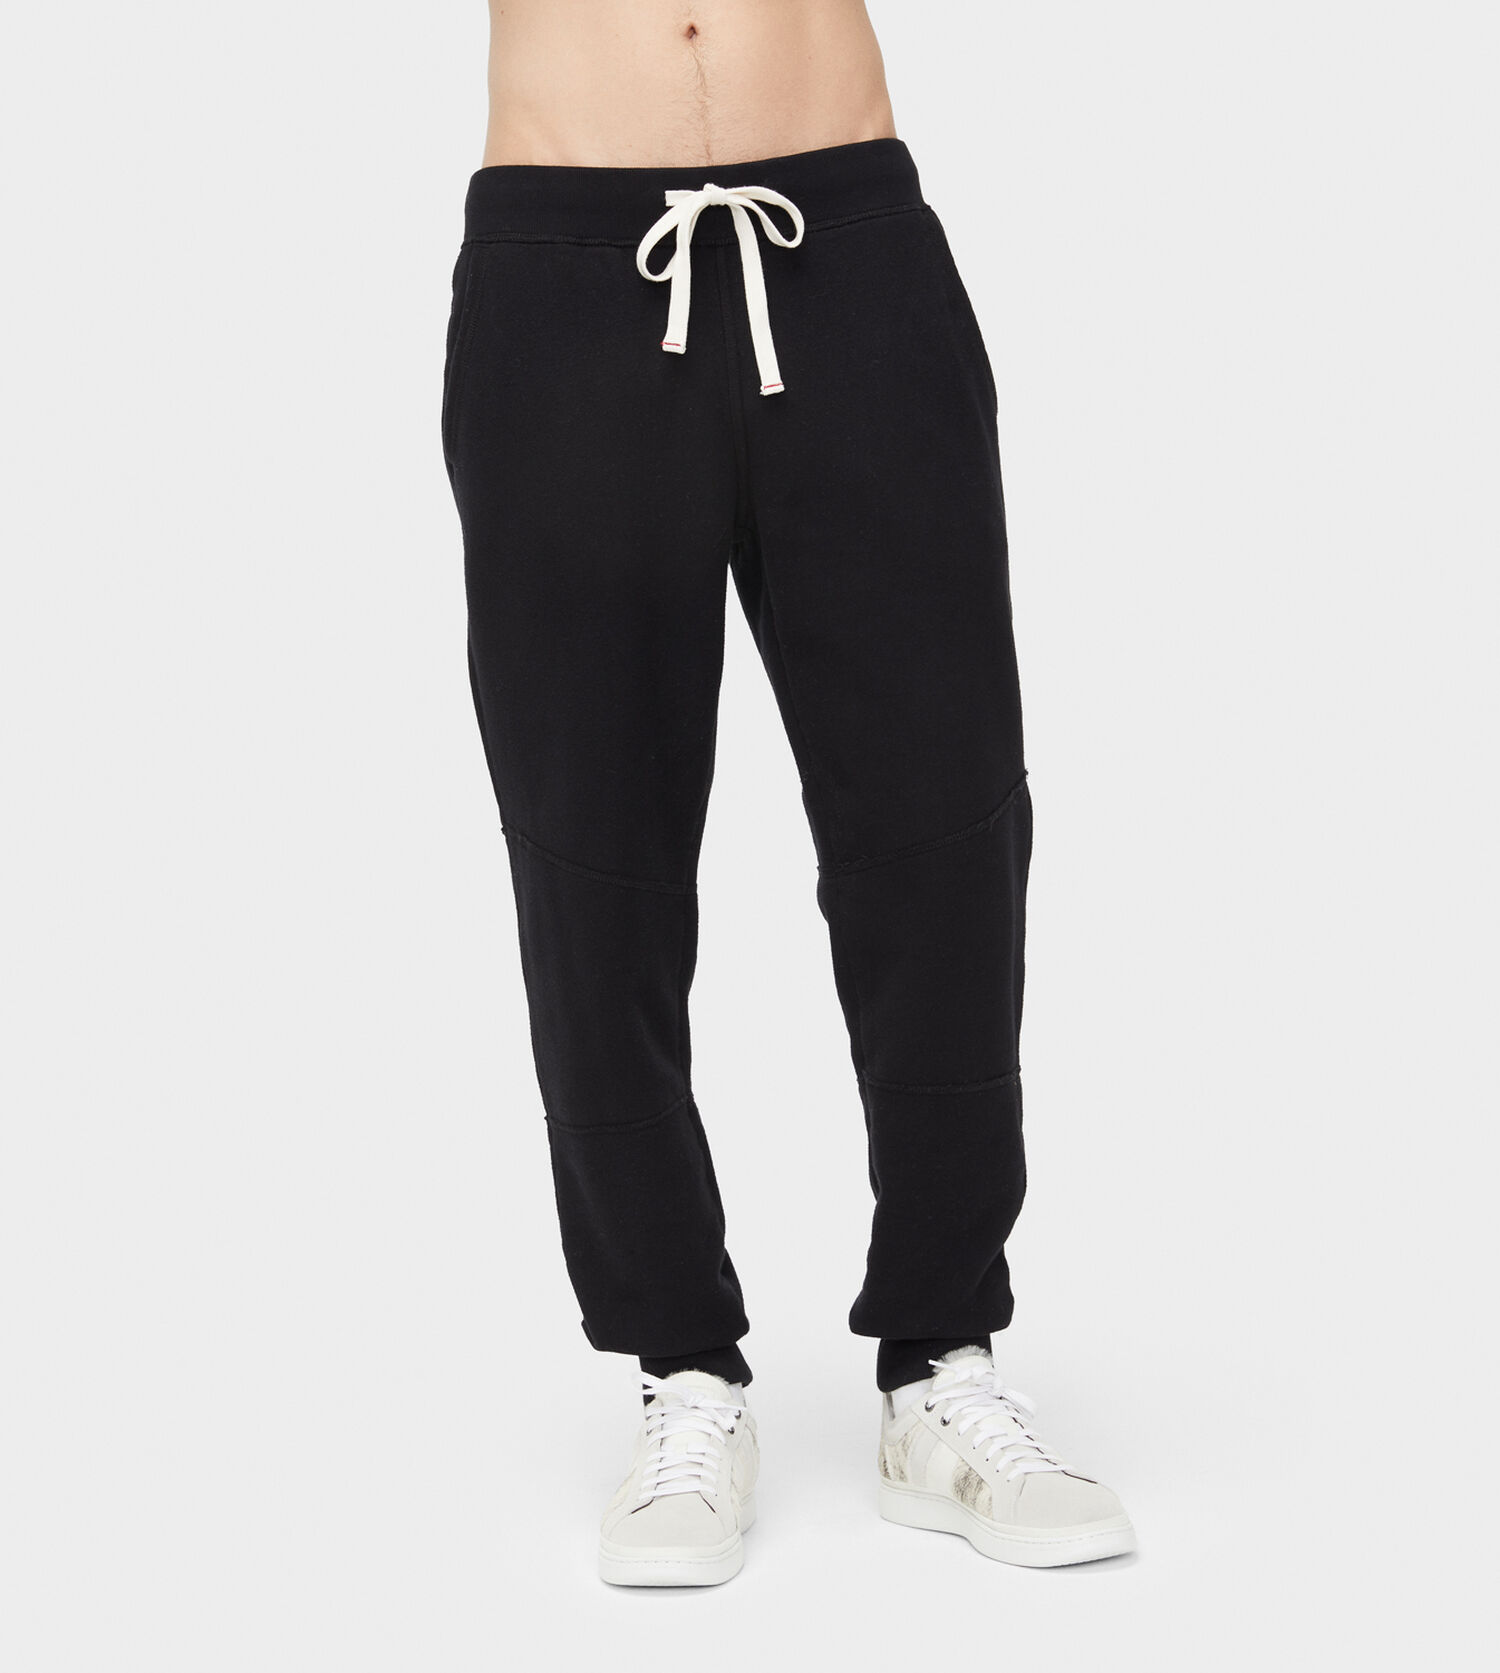 a94046a29a89 Zoom Reynold Jogger Pants - Image 1 of 3